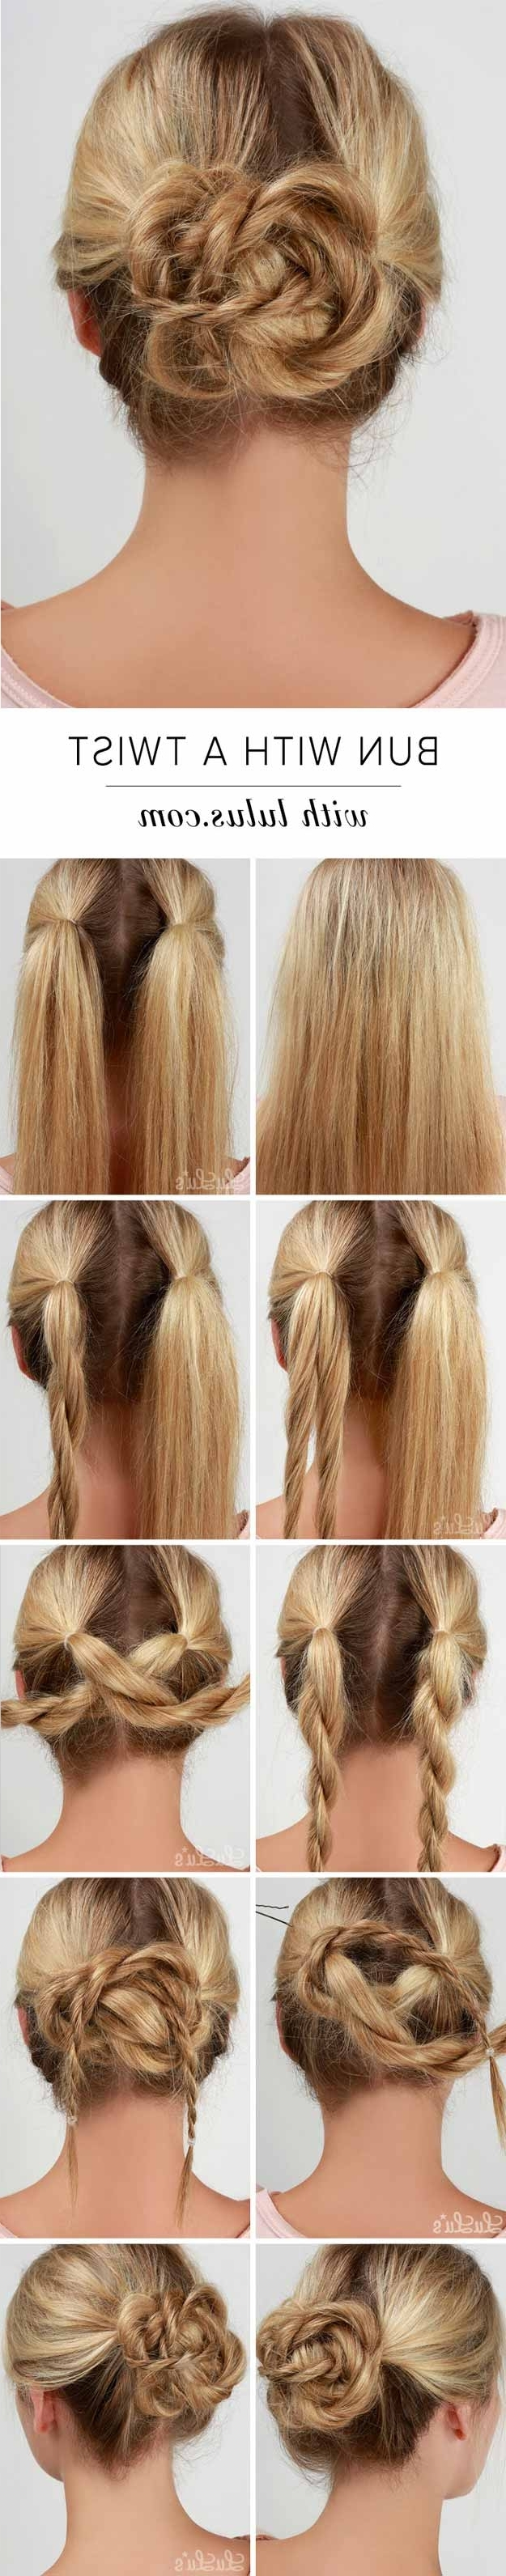 31 Wedding Hairstyles For Long Hair – The Goddess In Best And Newest Wedding Hairstyles For Long Layered Hair (View 10 of 15)